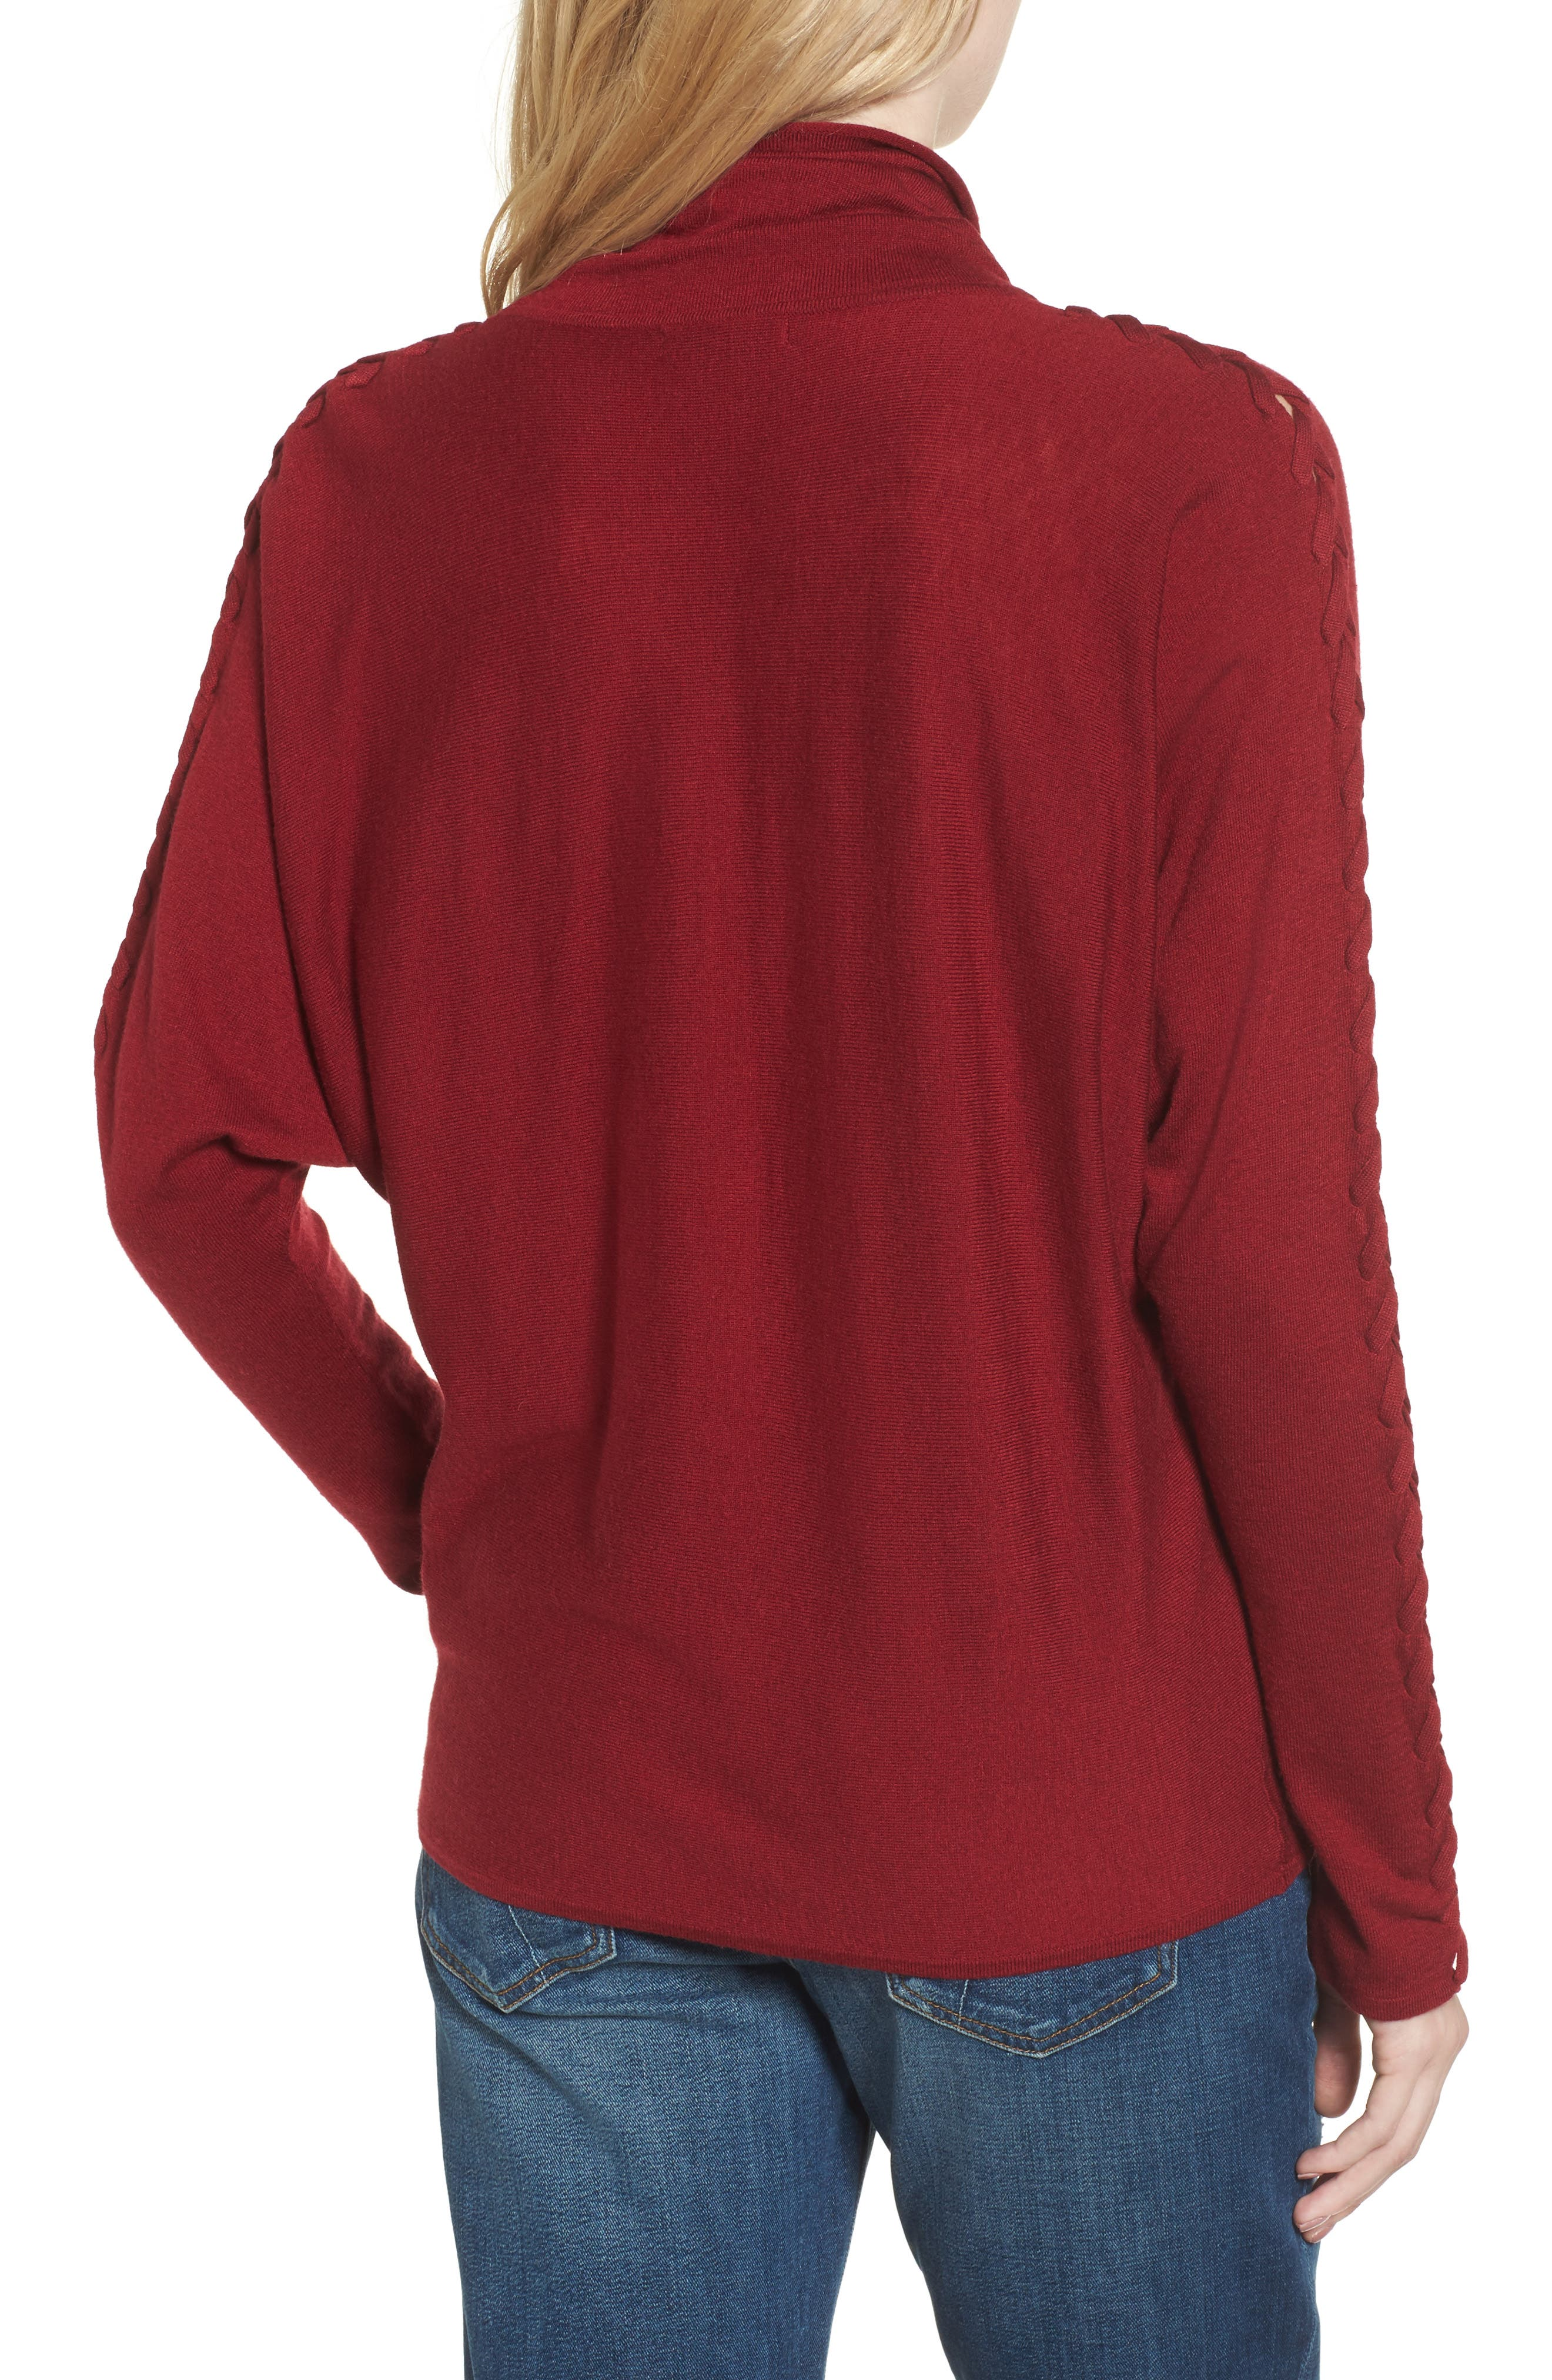 Victoire Turtleneck Sweater,                             Alternate thumbnail 4, color,